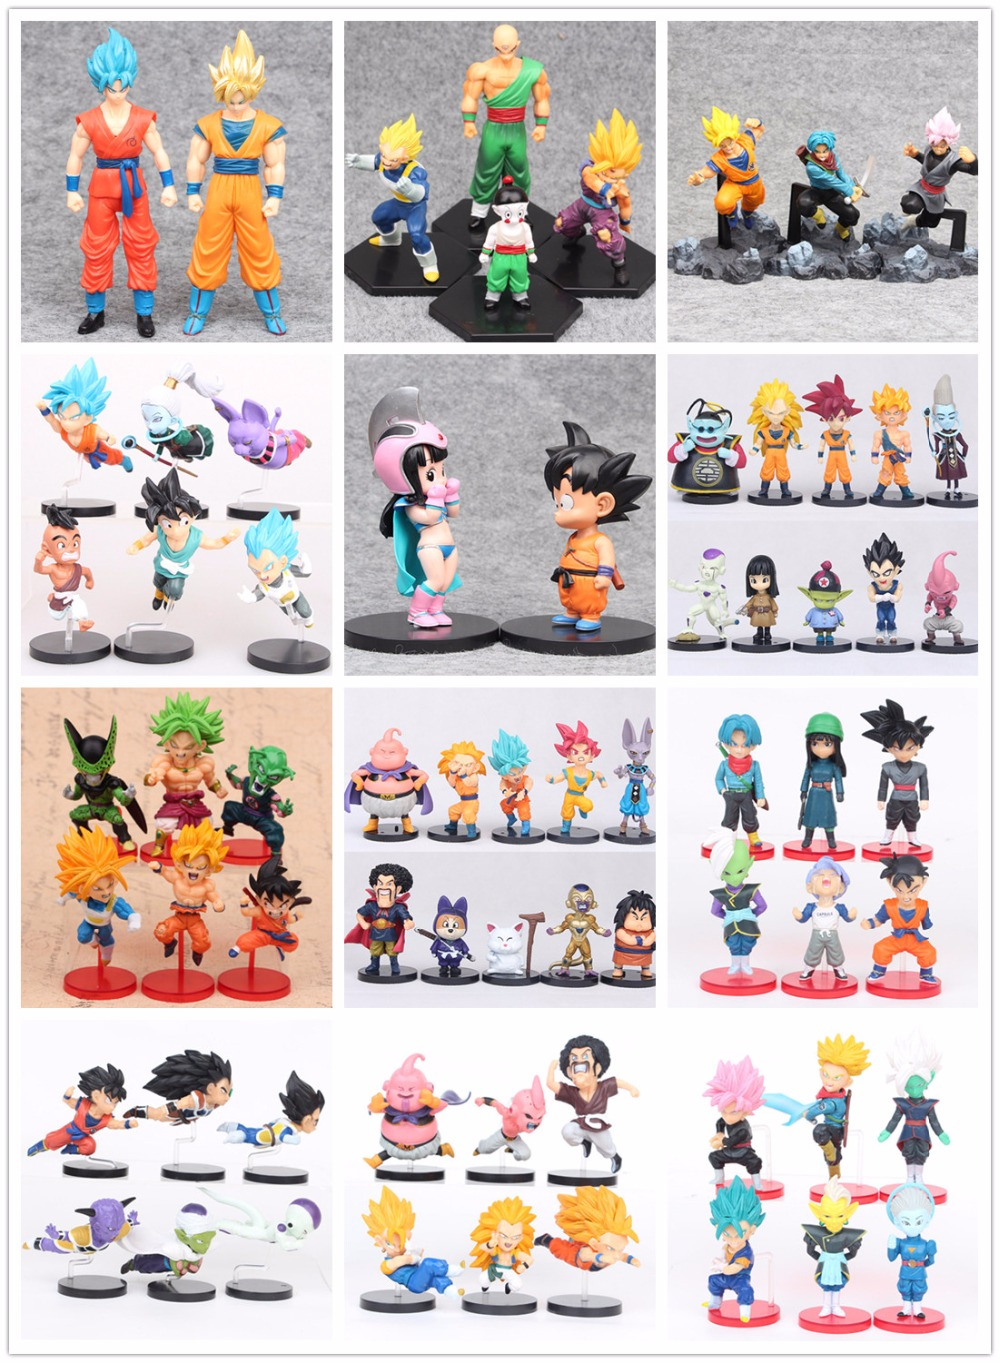 Action Figures Toys Kids Gifts Toy Pvc Collections Christmas Model For Dragon Ball Z Son Goku Vegeta Bulma Puar Piccolo 16pcs set 4 6cm little pvc action toy figures horse princess celestia christmas gift for kids toys